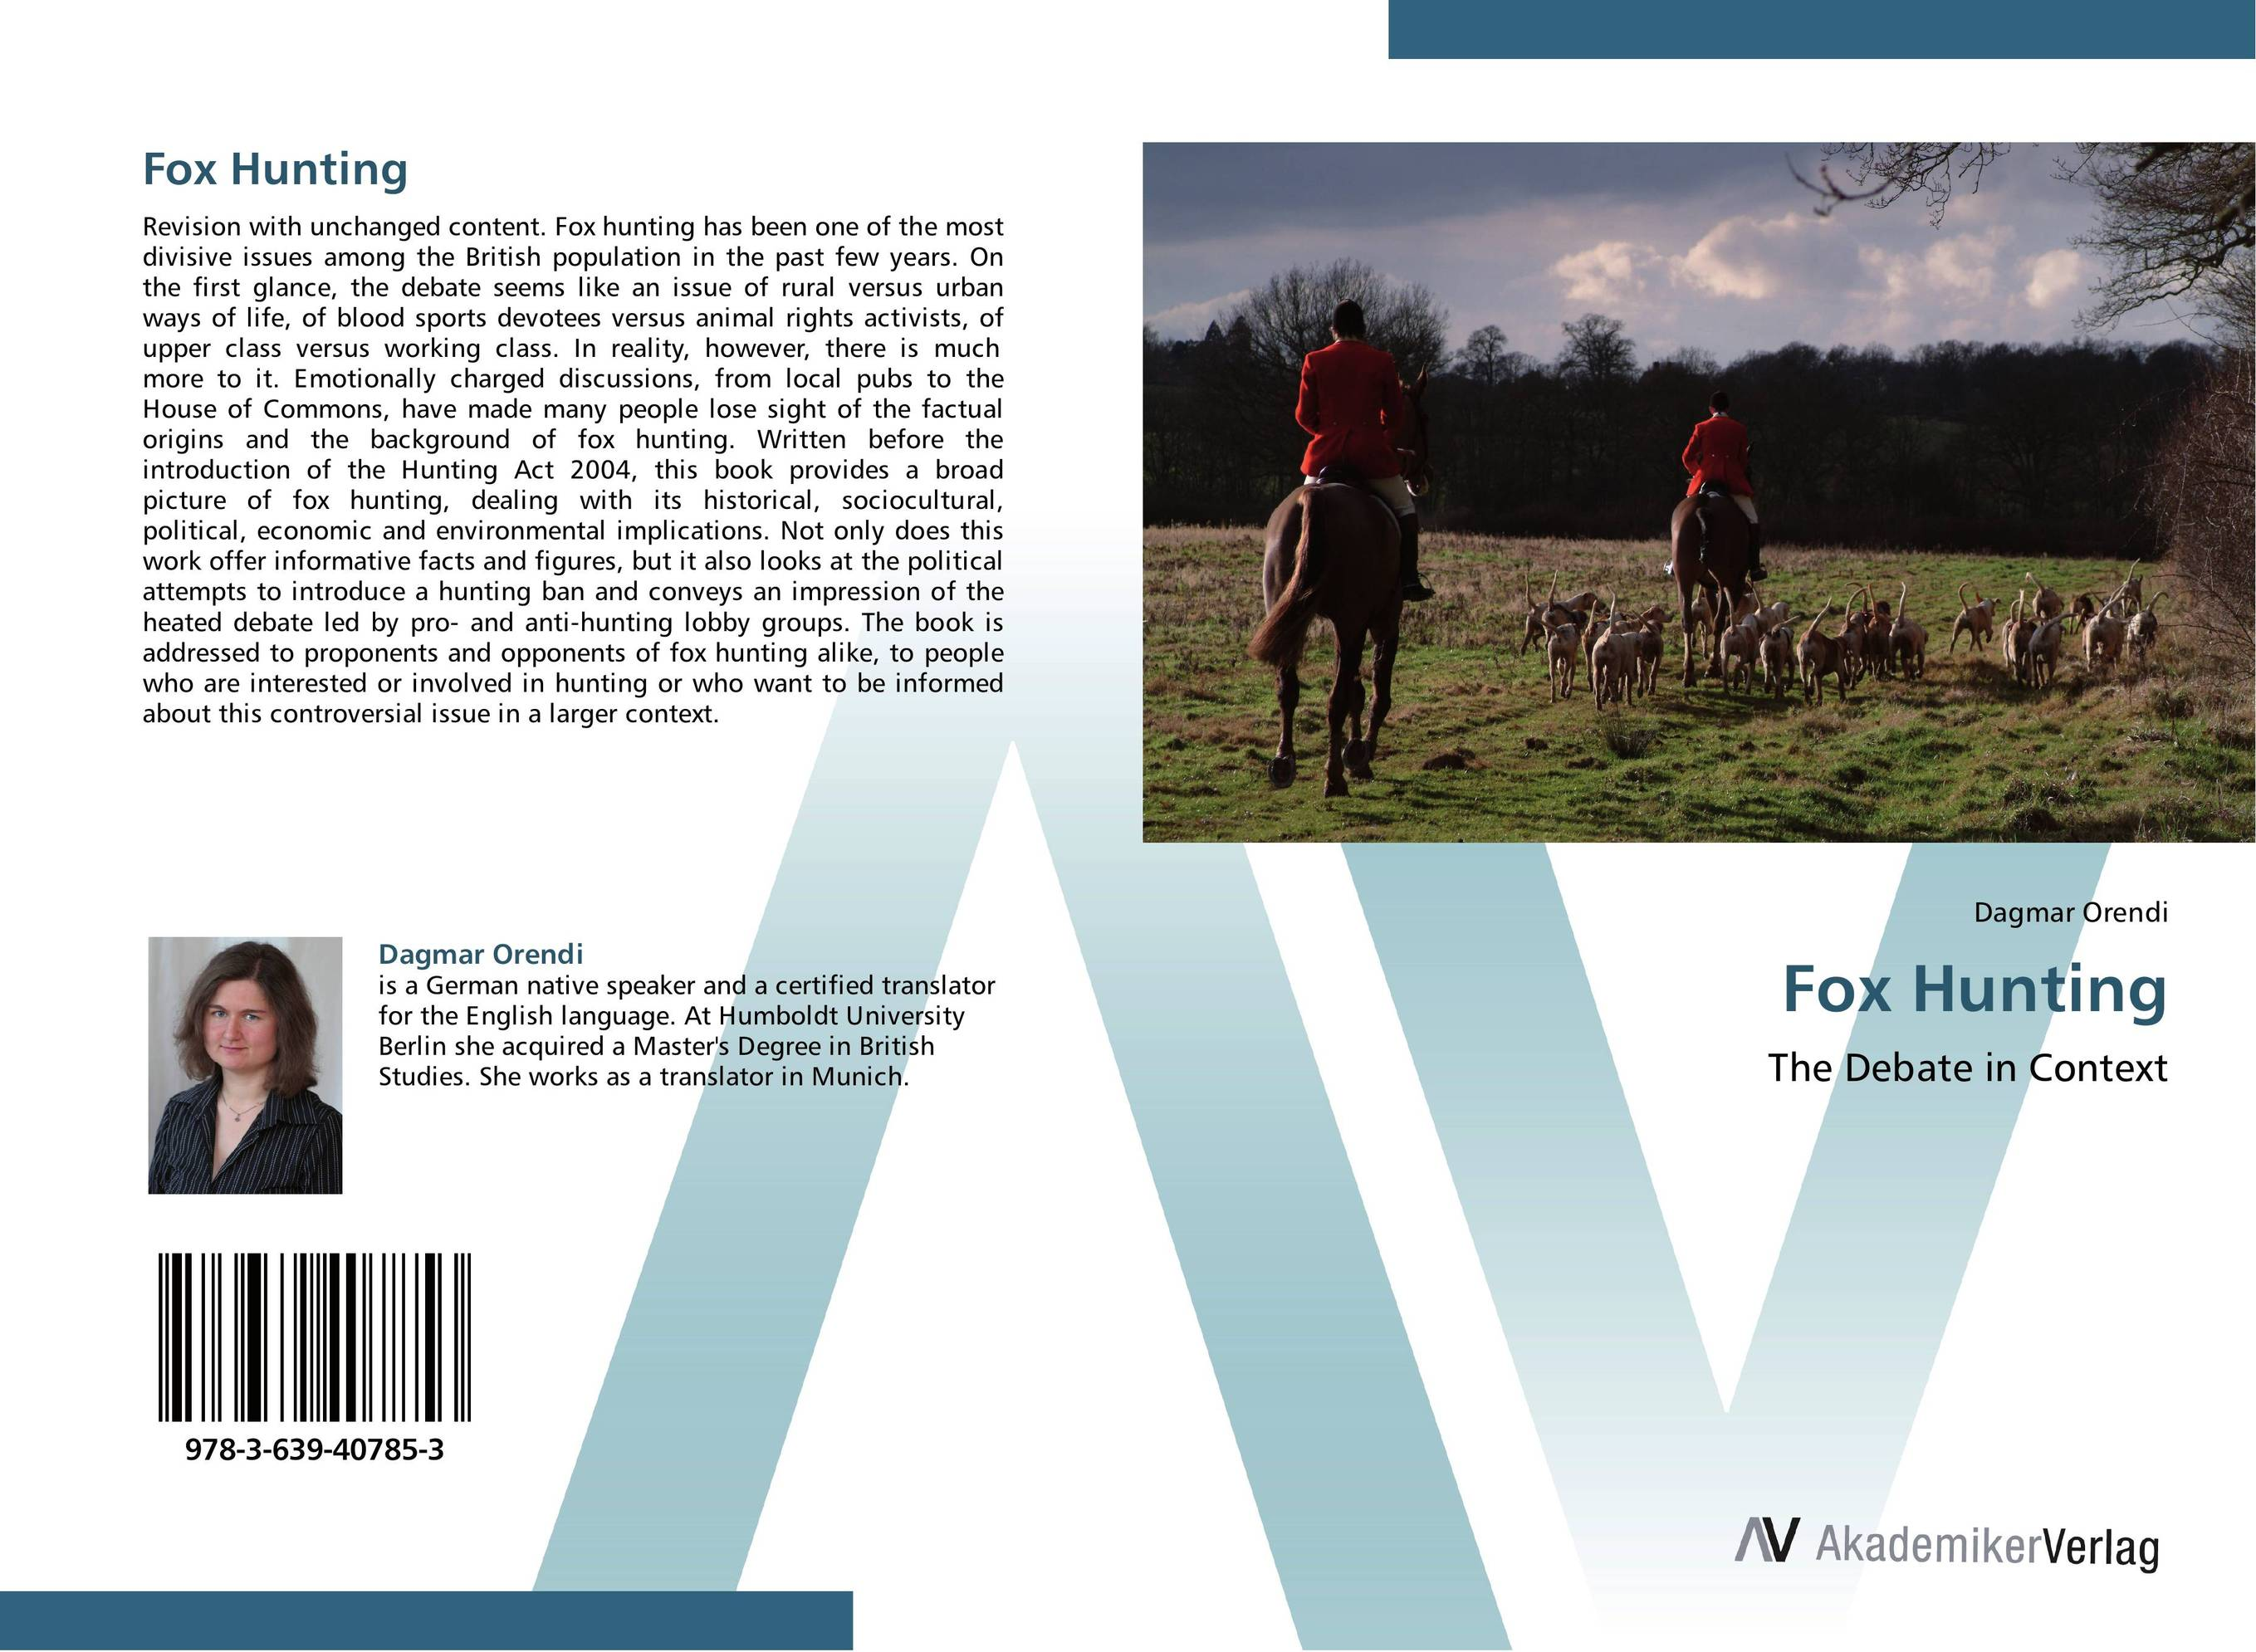 Fox Hunting the art of hunting